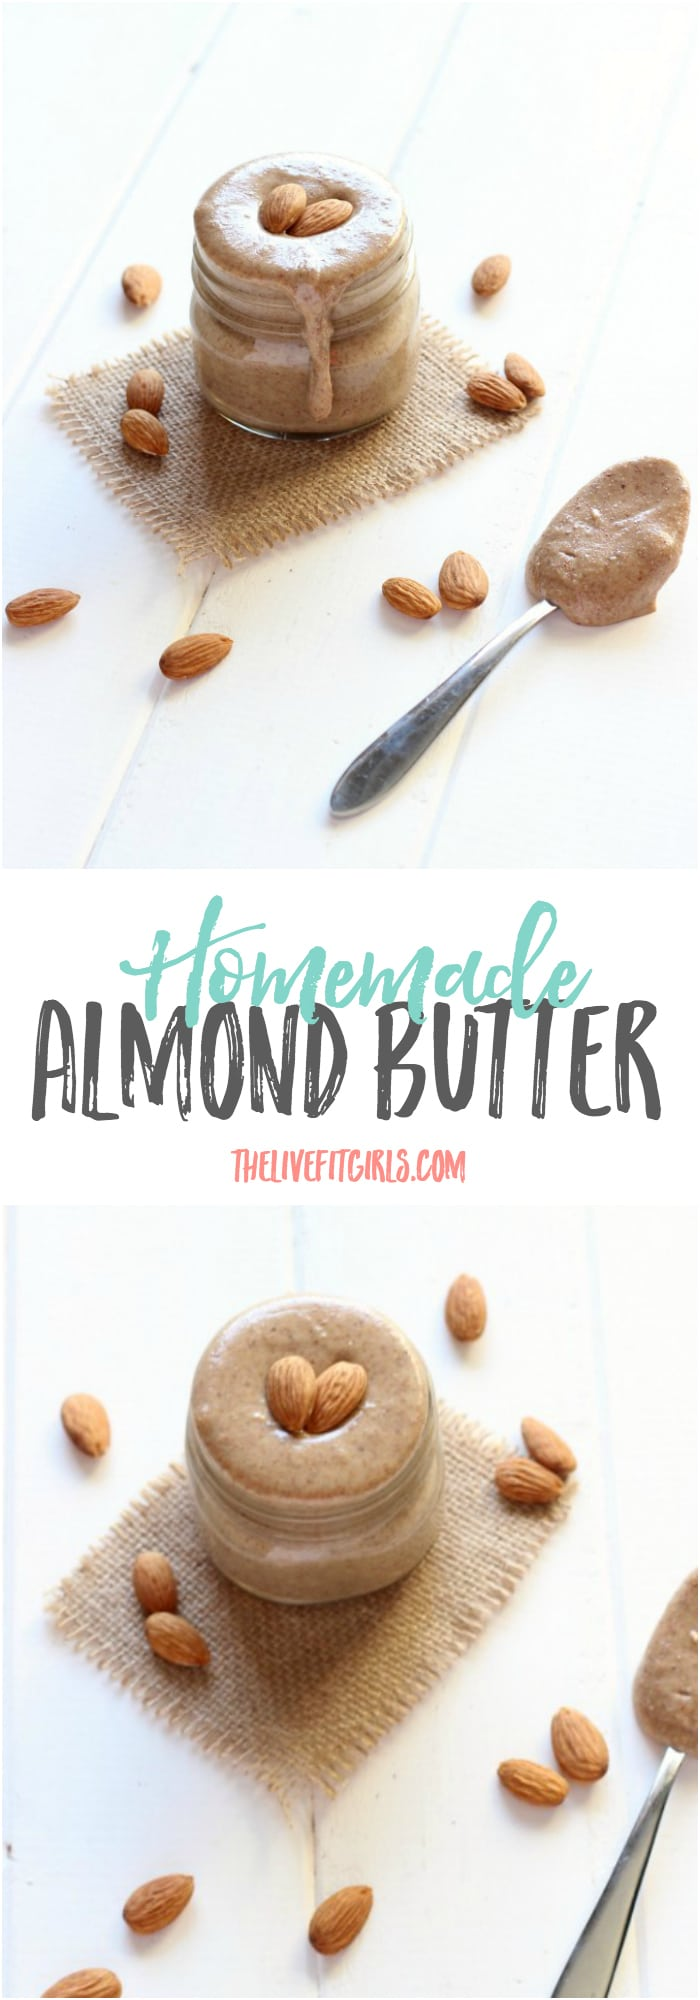 almond-butter-pin